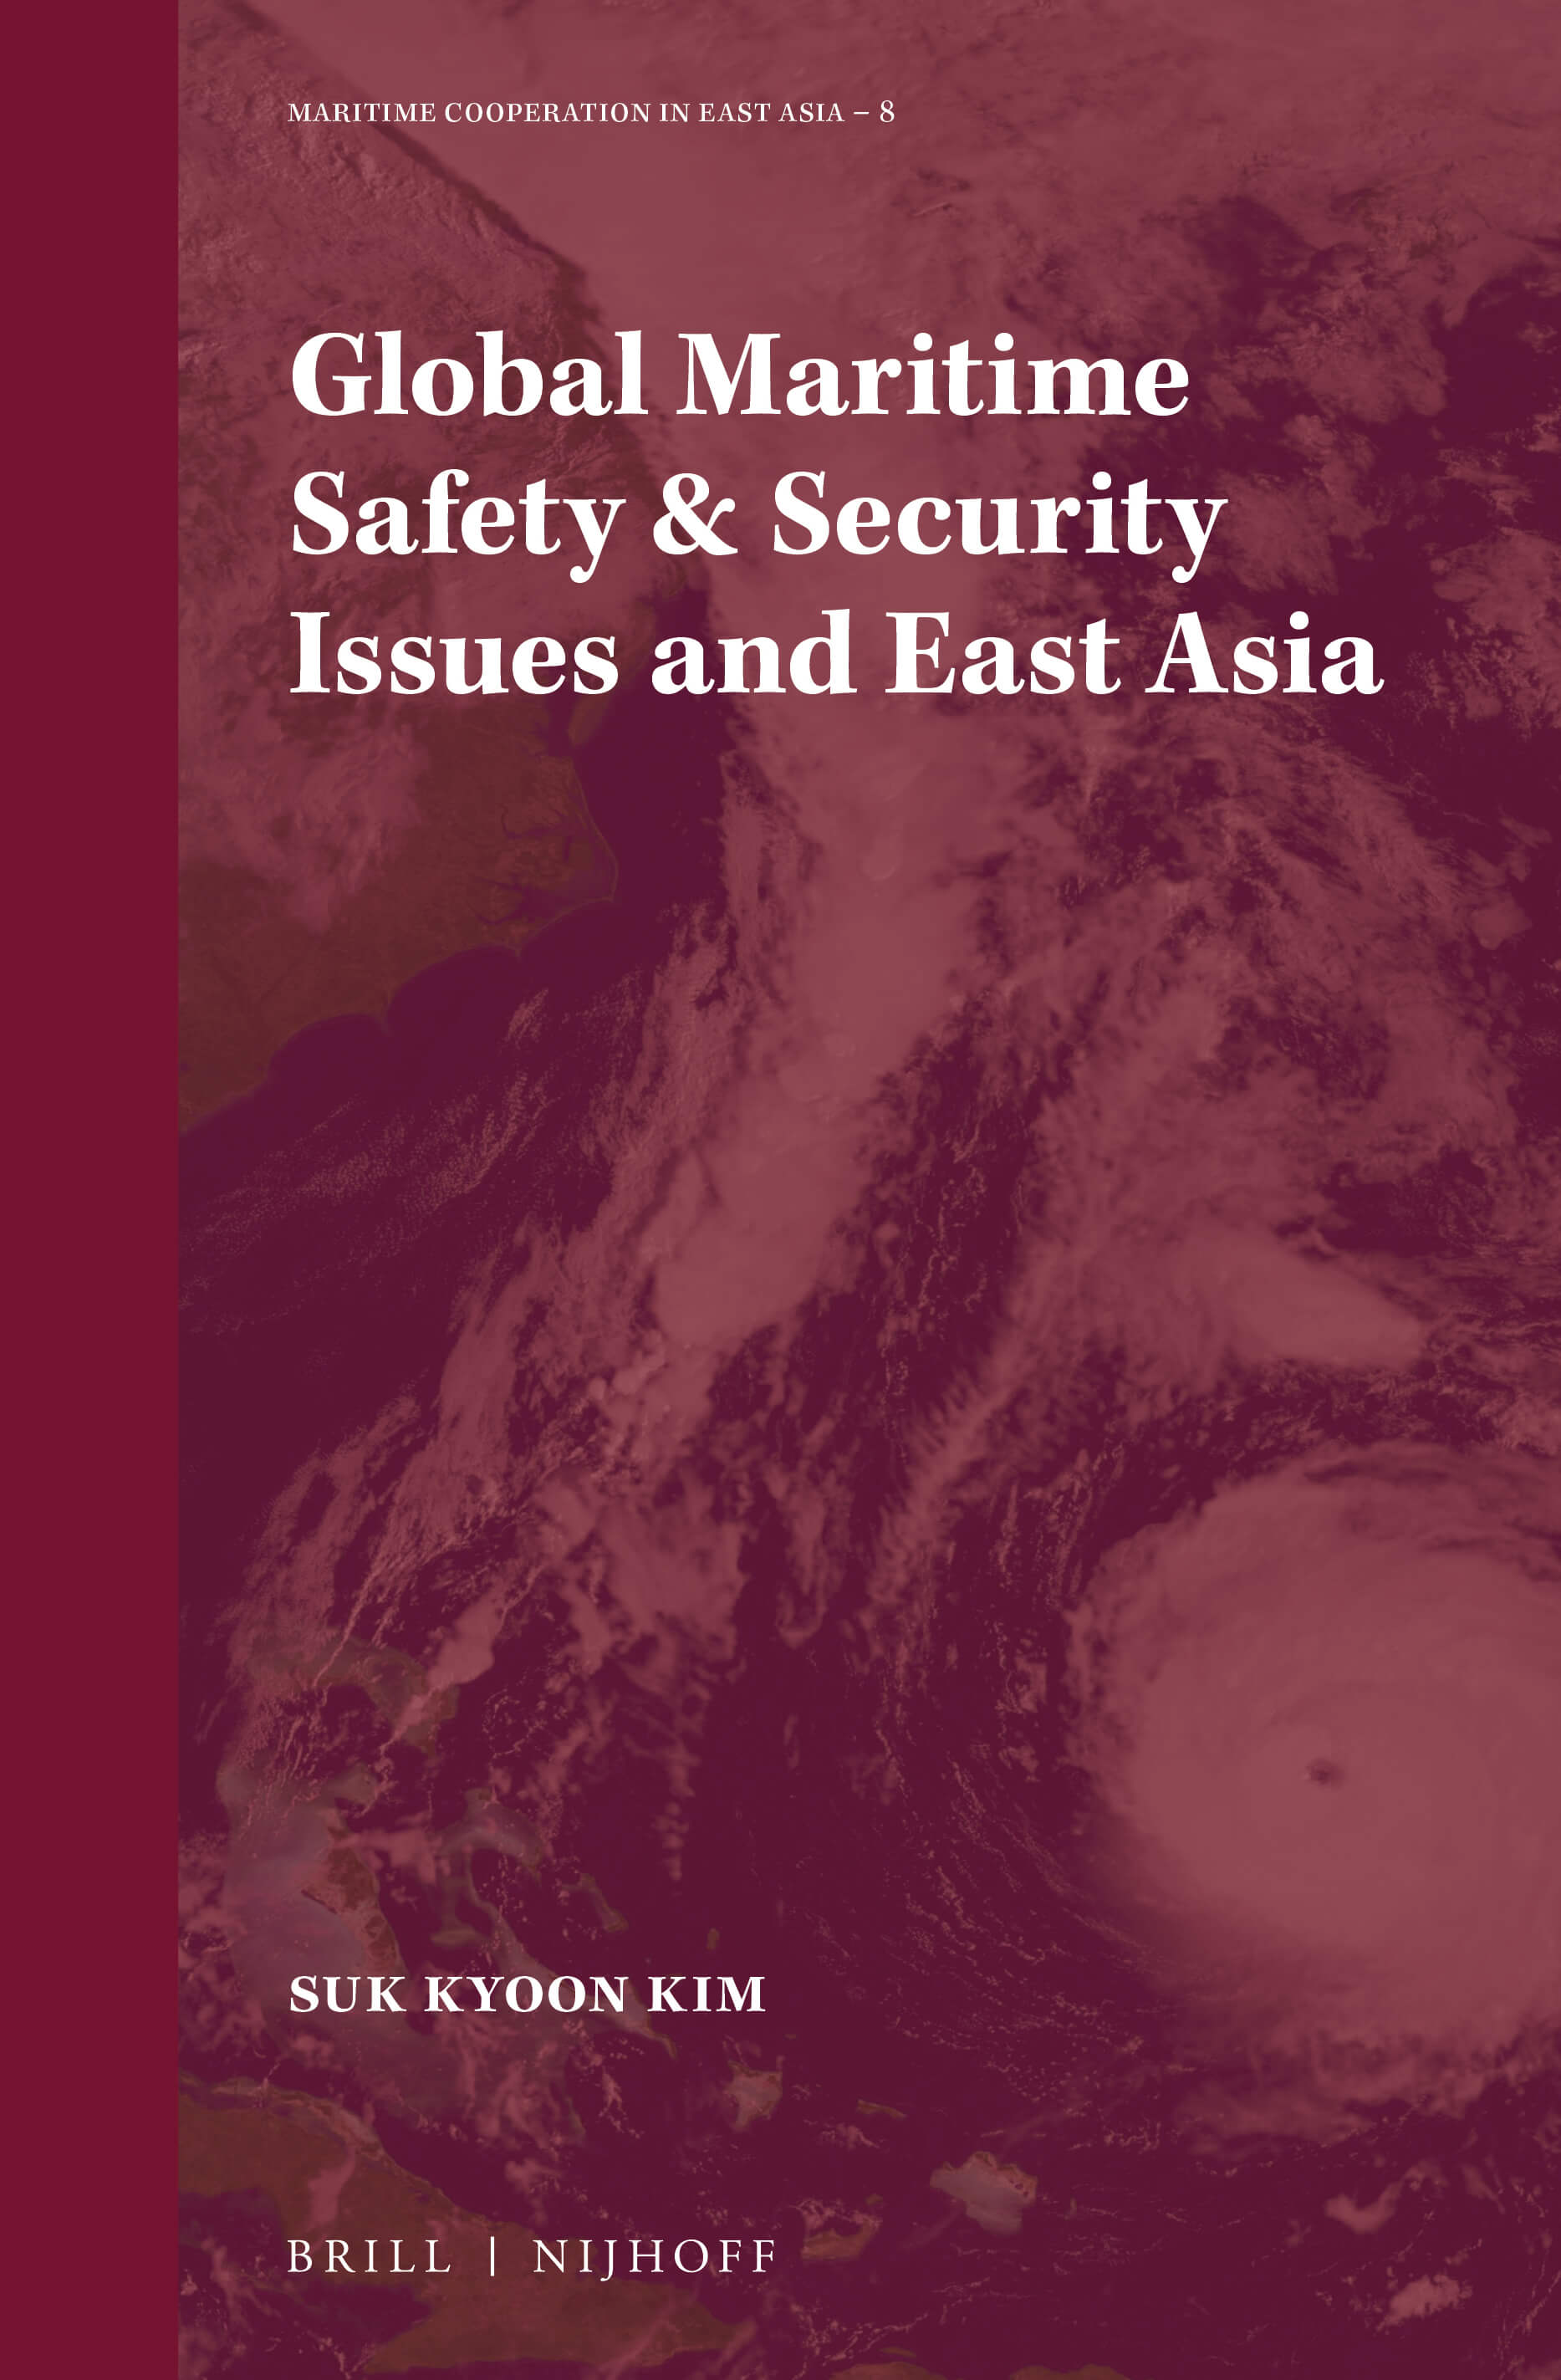 Global Maritime Safety & Security Issues and East Asia